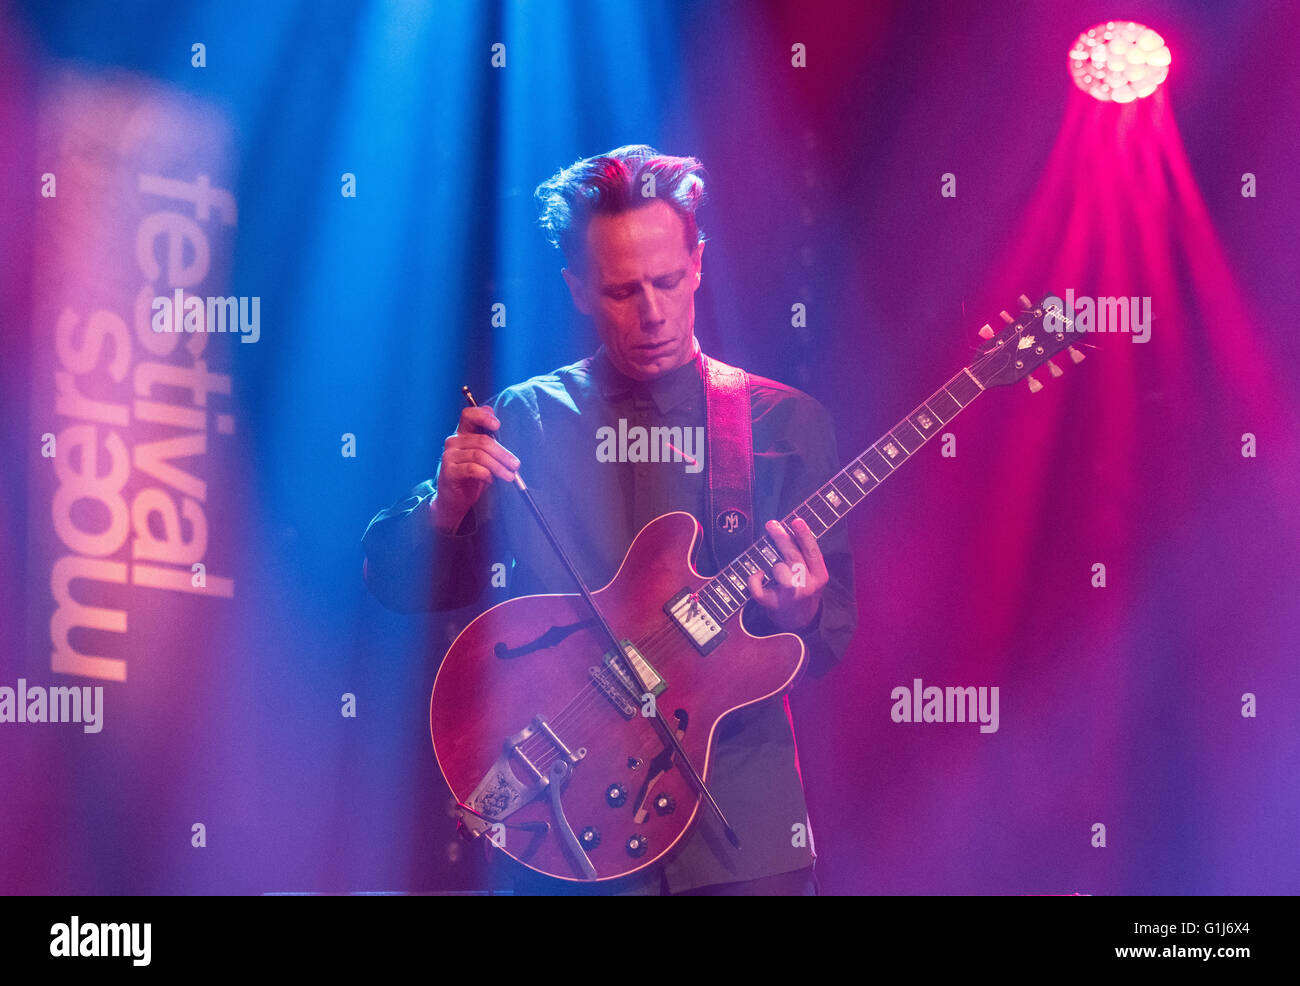 Norwegian guitarist Stian Westerhus from the band 'Warped Dreamer' plays at the Moers Festival in Moers, - Stock Image